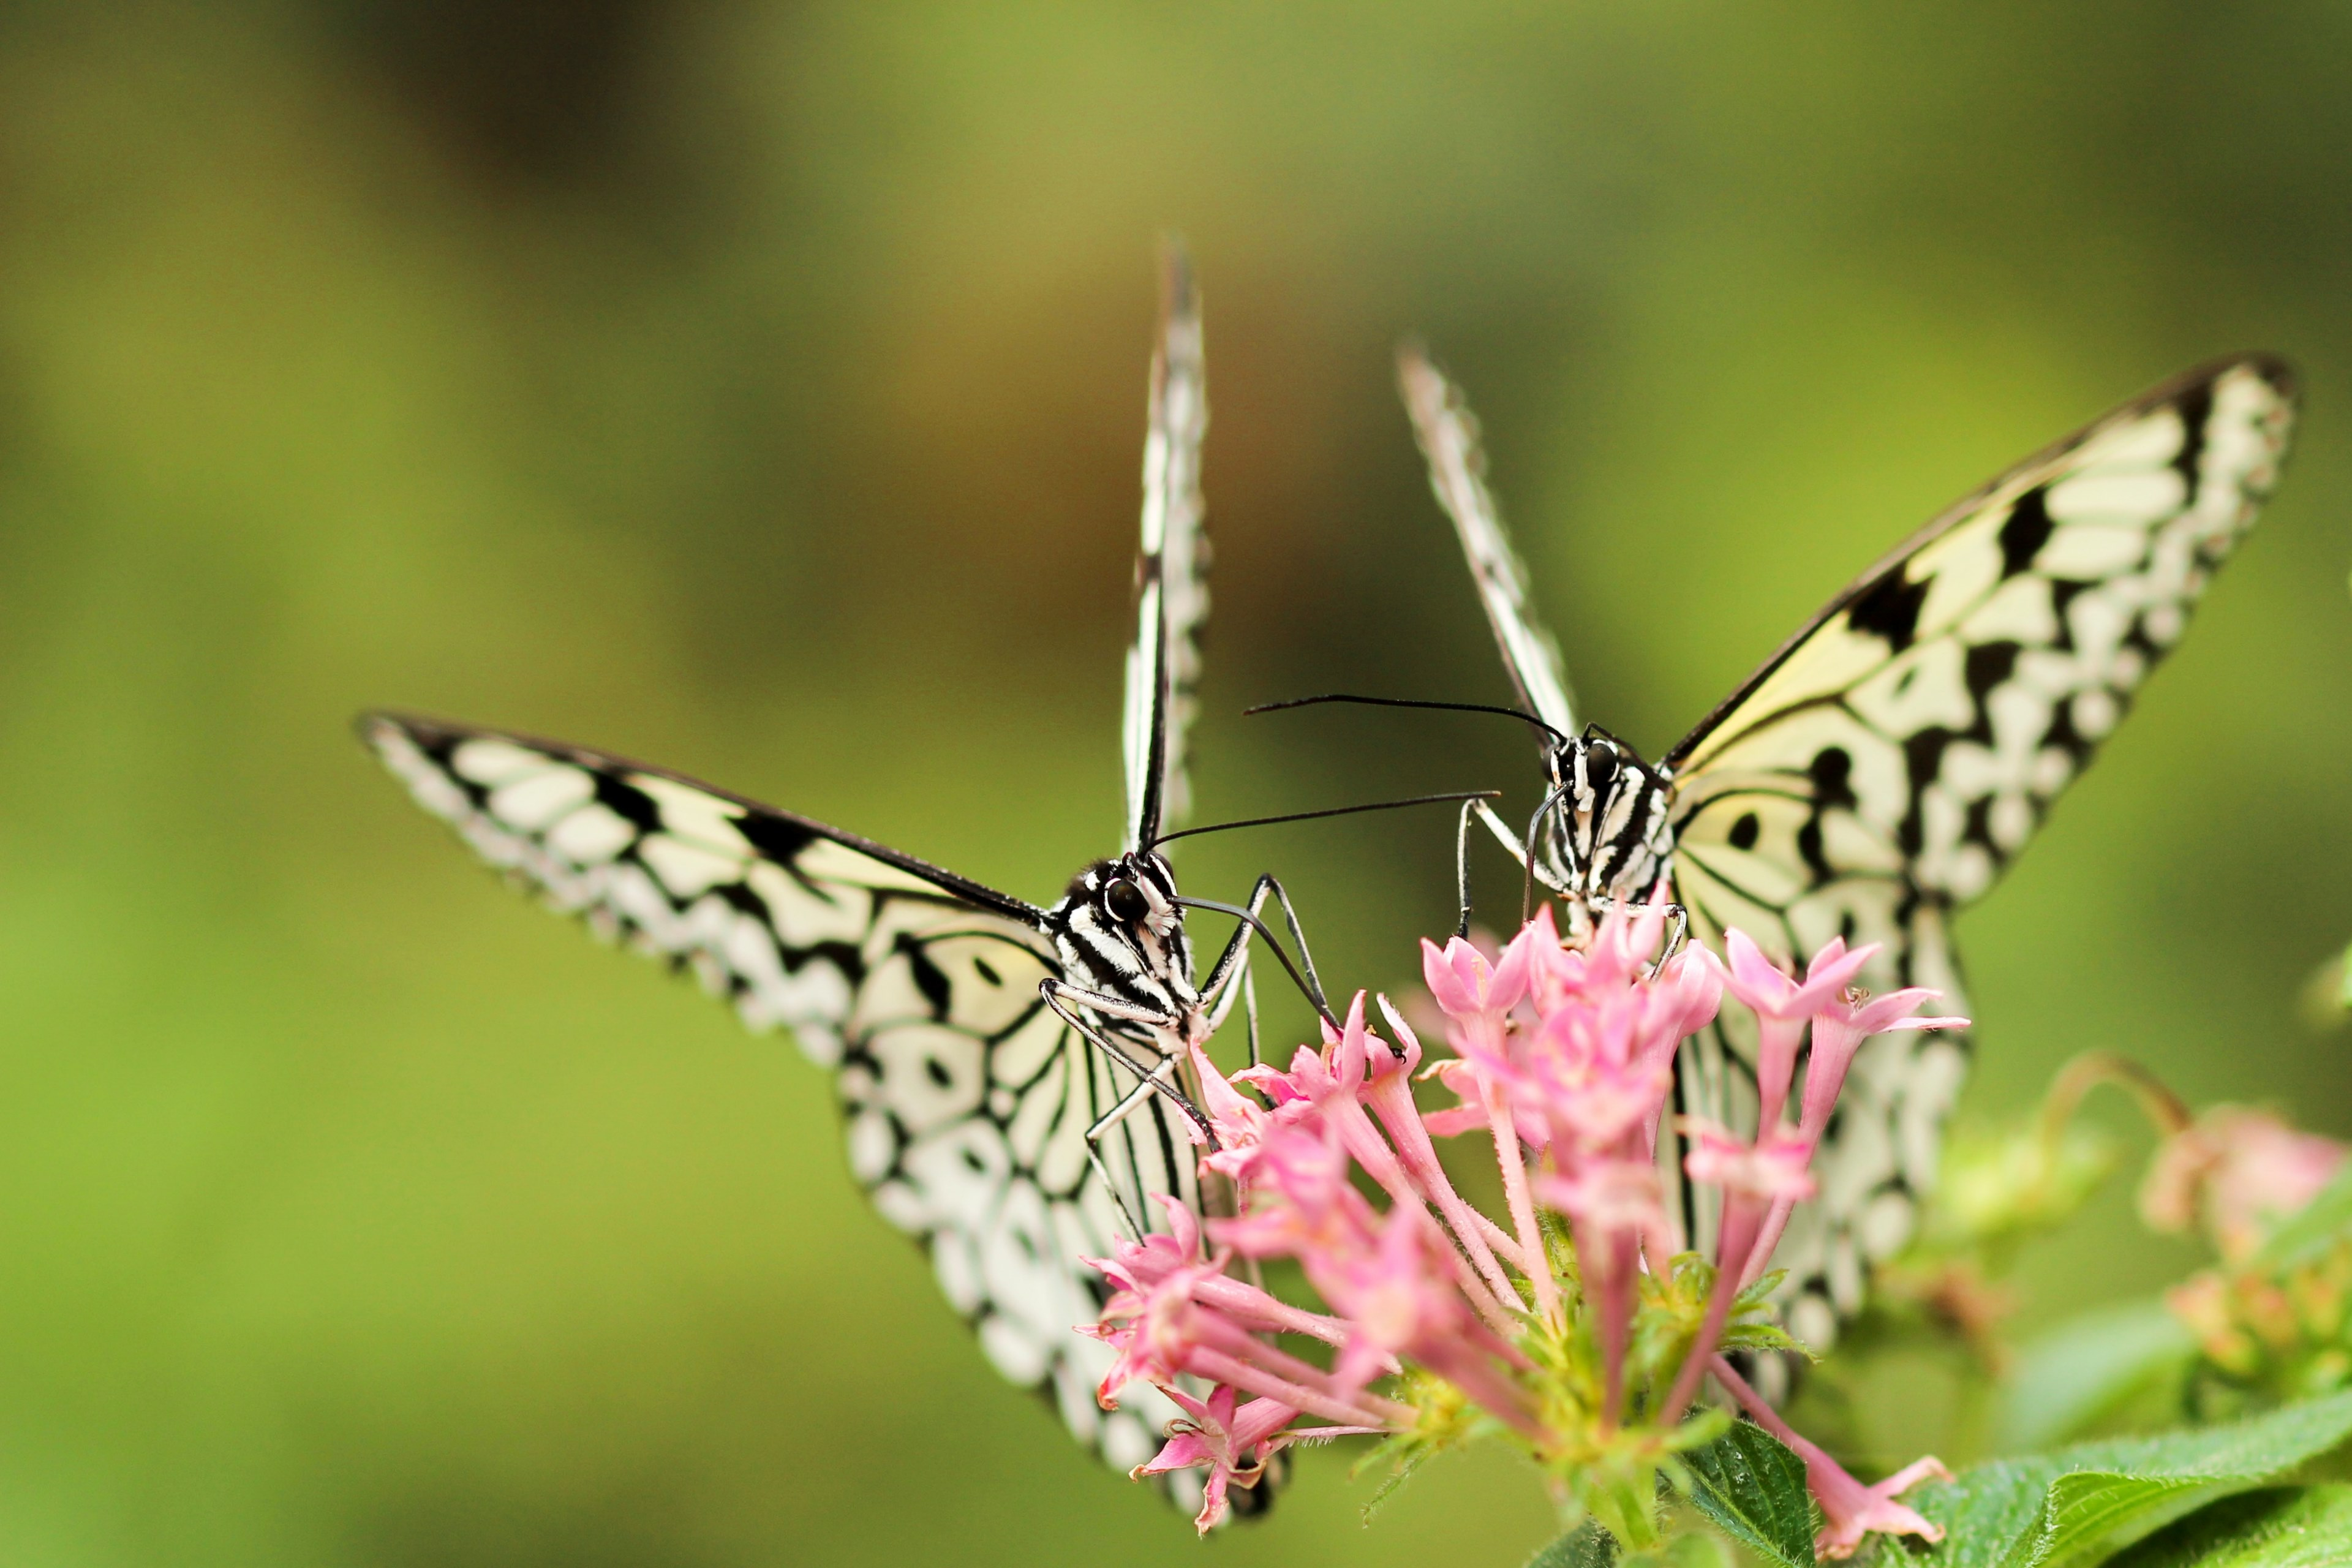 #3840x2560 Two Black And White Butterflies On Pink - Hug Day Images With Good Morning 2019 , HD Wallpaper & Backgrounds